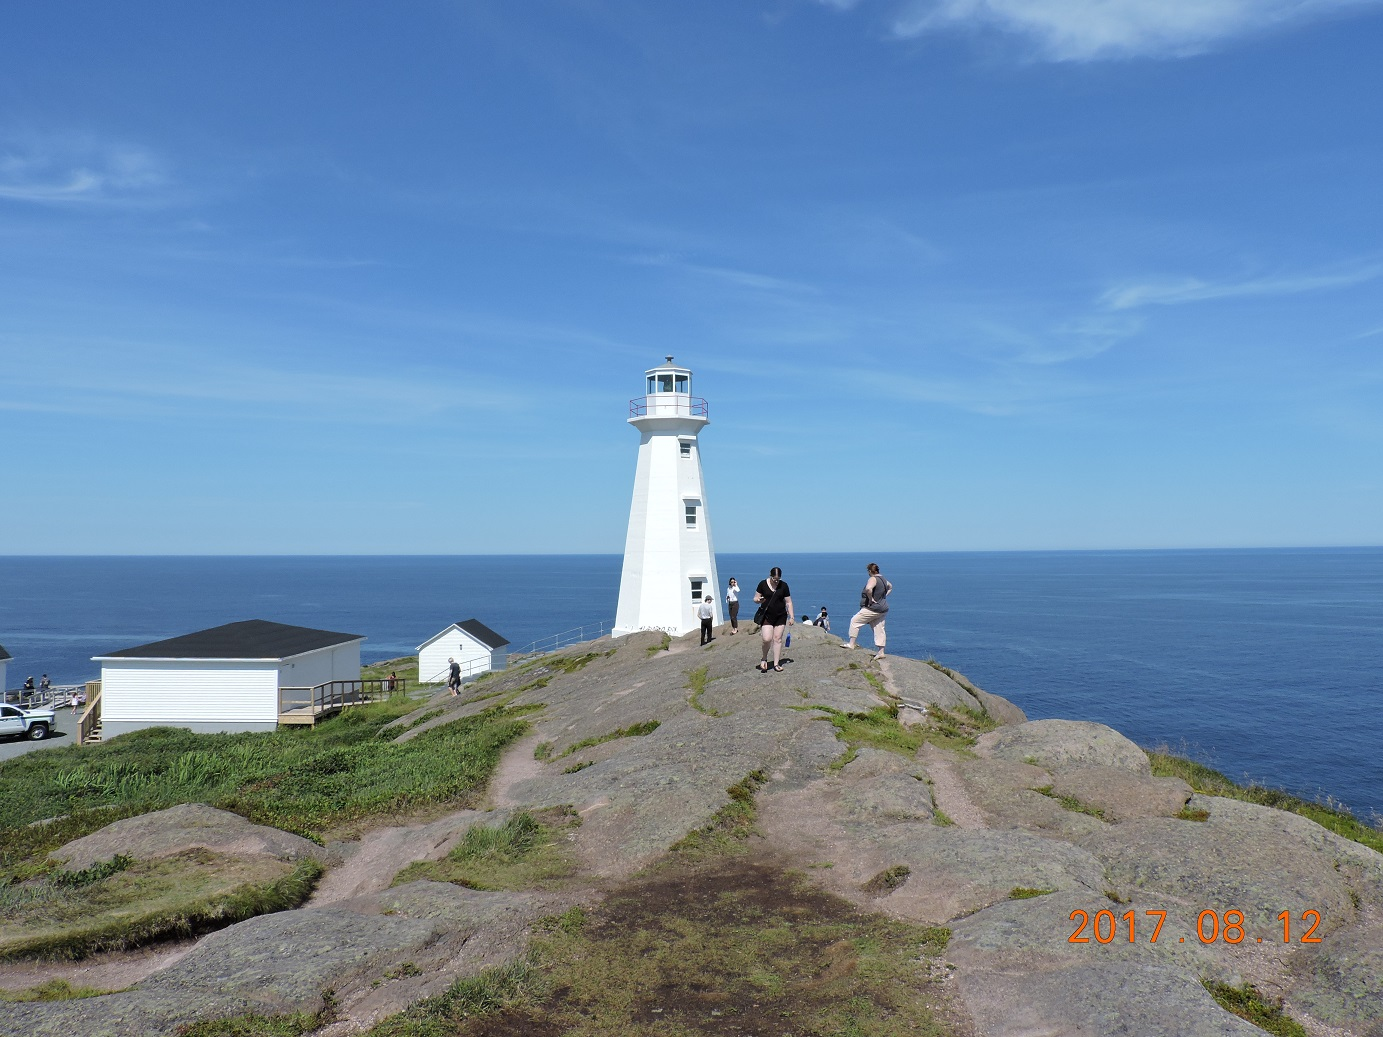 Cape Spear Lighthouser